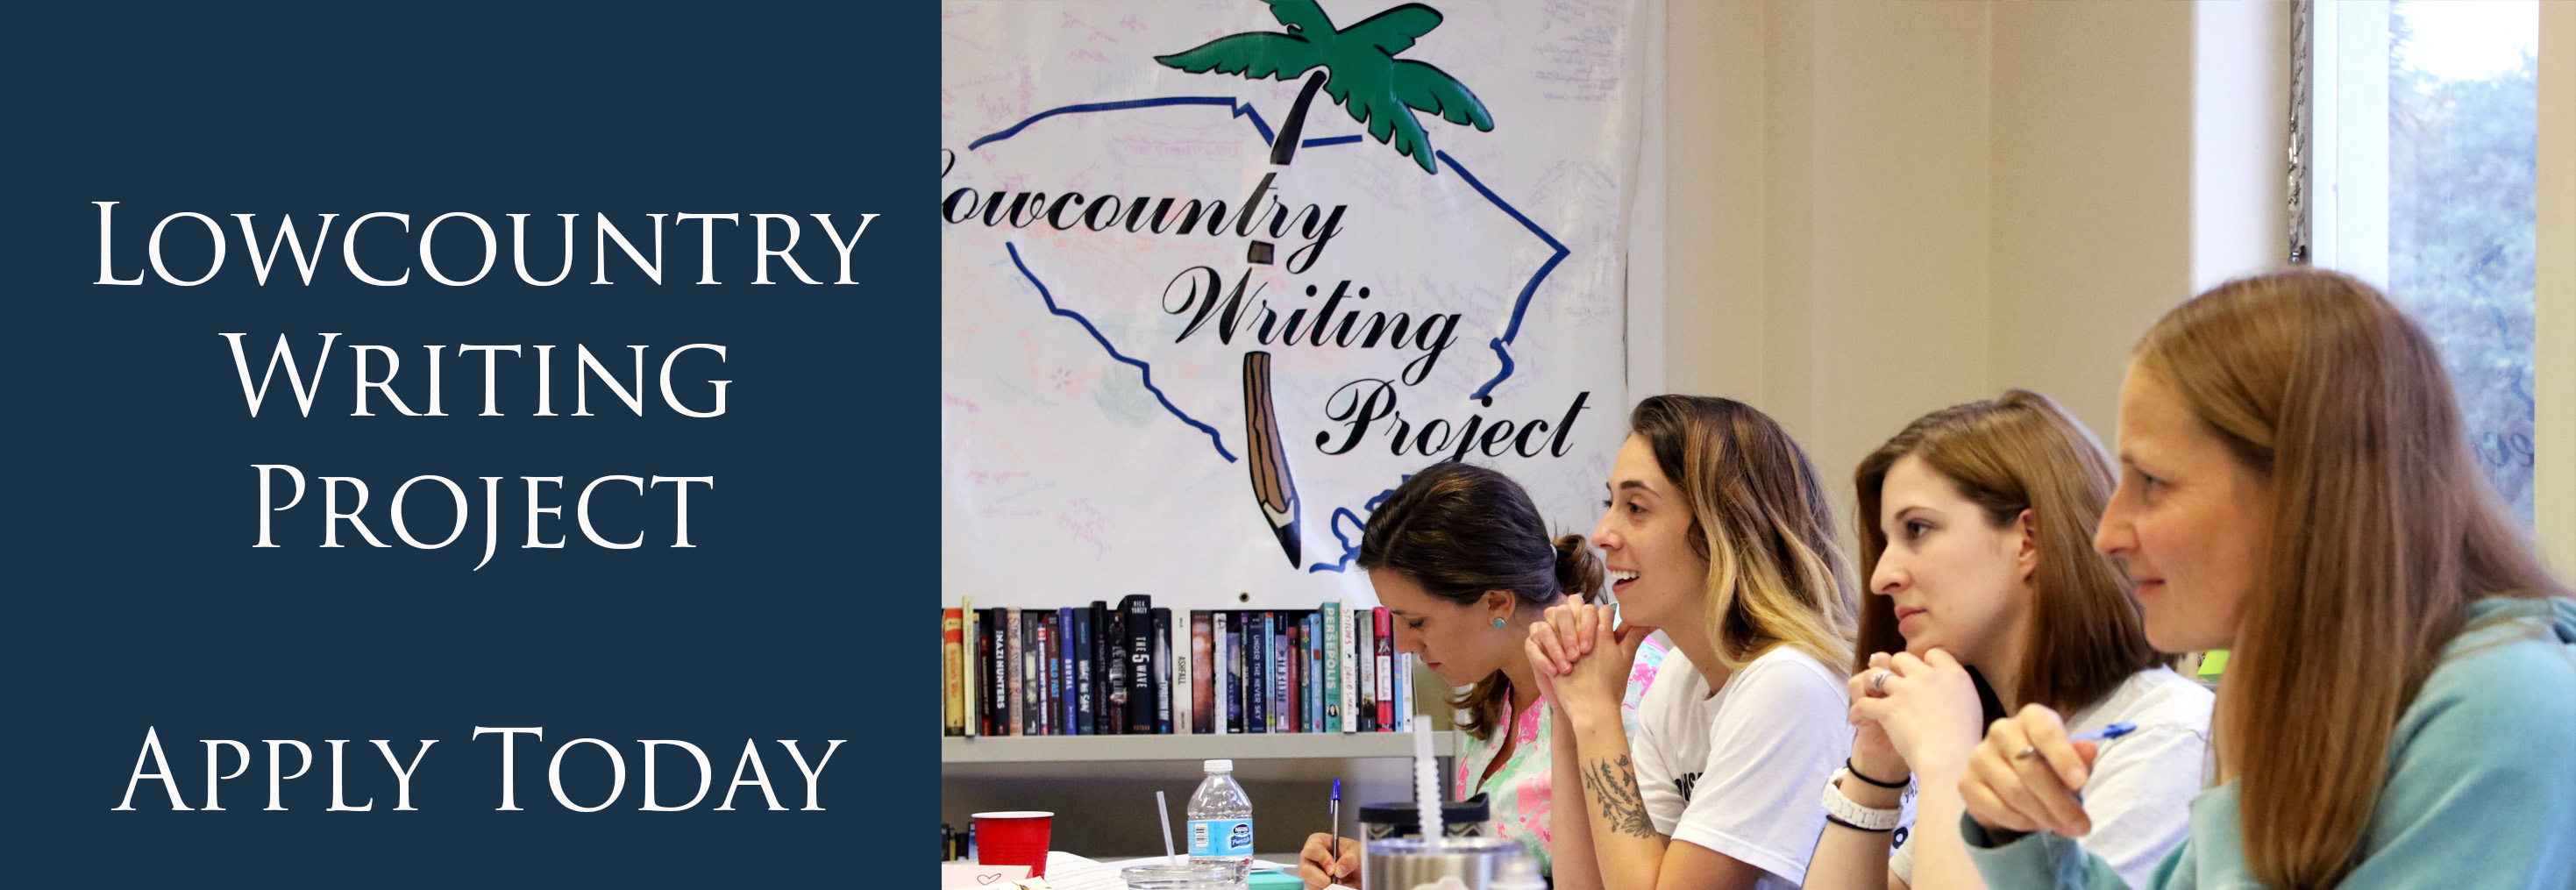 Lowcountry Writing Project